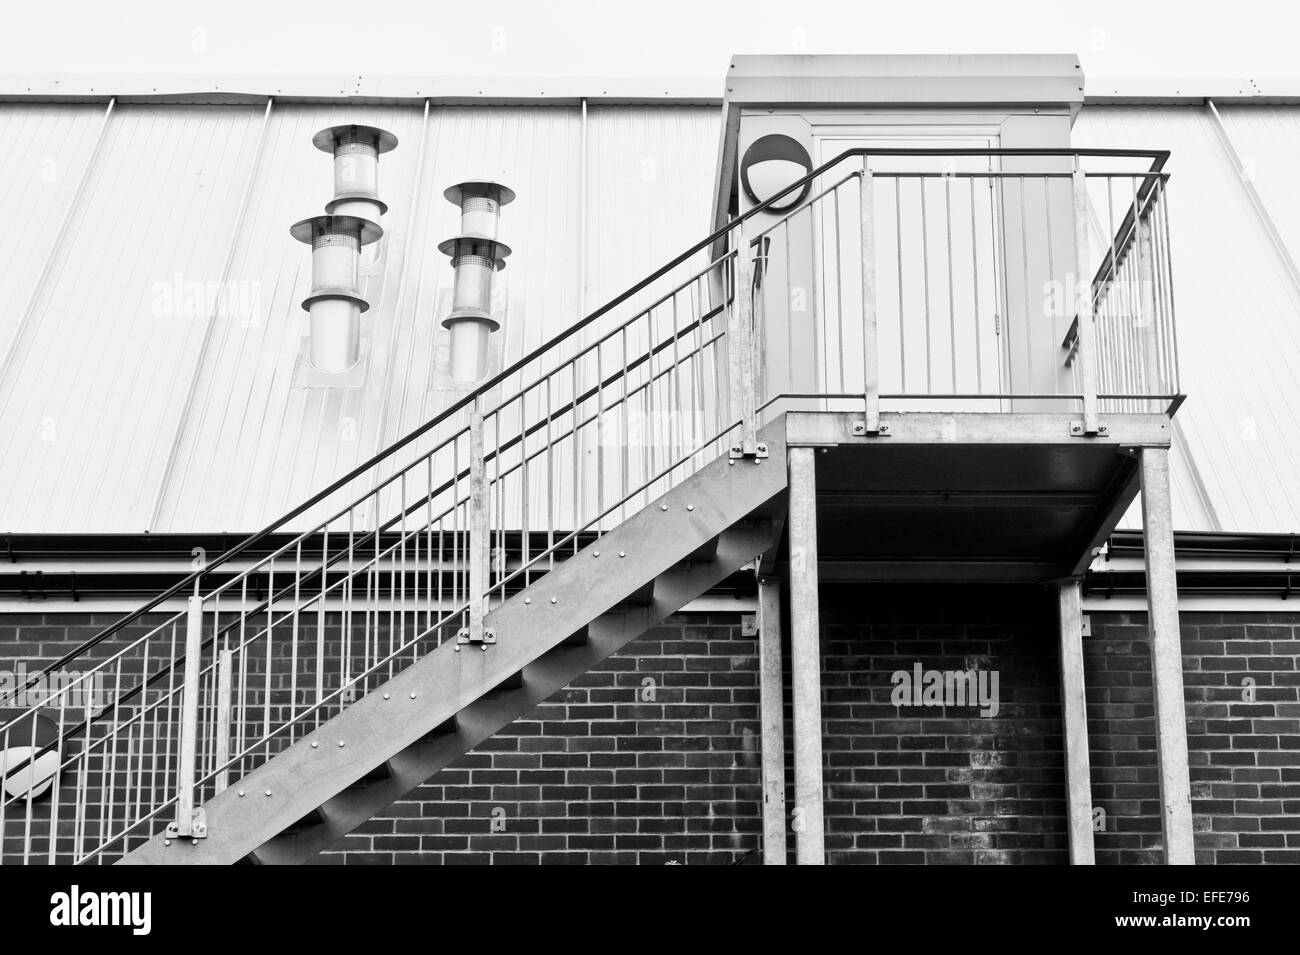 Metal Stairs On The Exterior Of A Modern Building   Stock Image